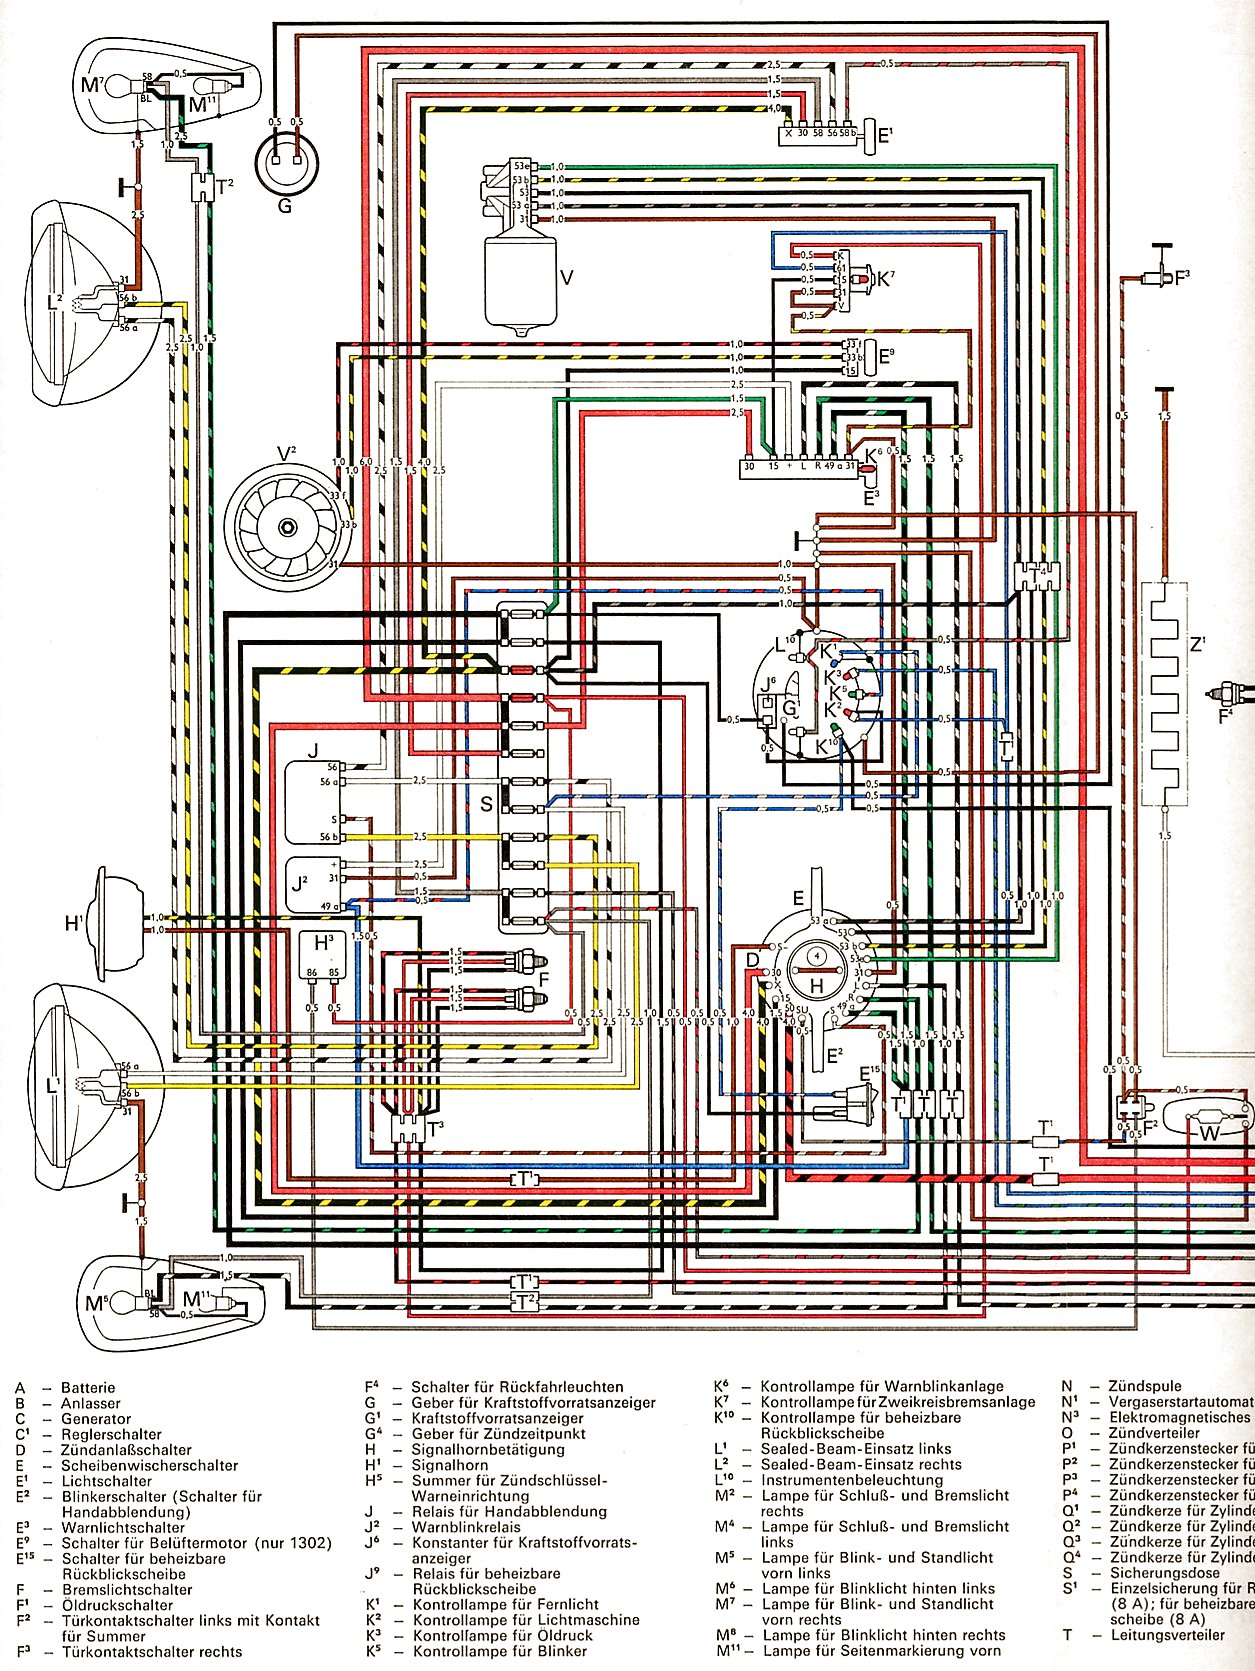 73 beetle wiring diagram backup light wiring diagram \u2022 wiring VW Buggy Wiring -Diagram vw bug wiring schematic